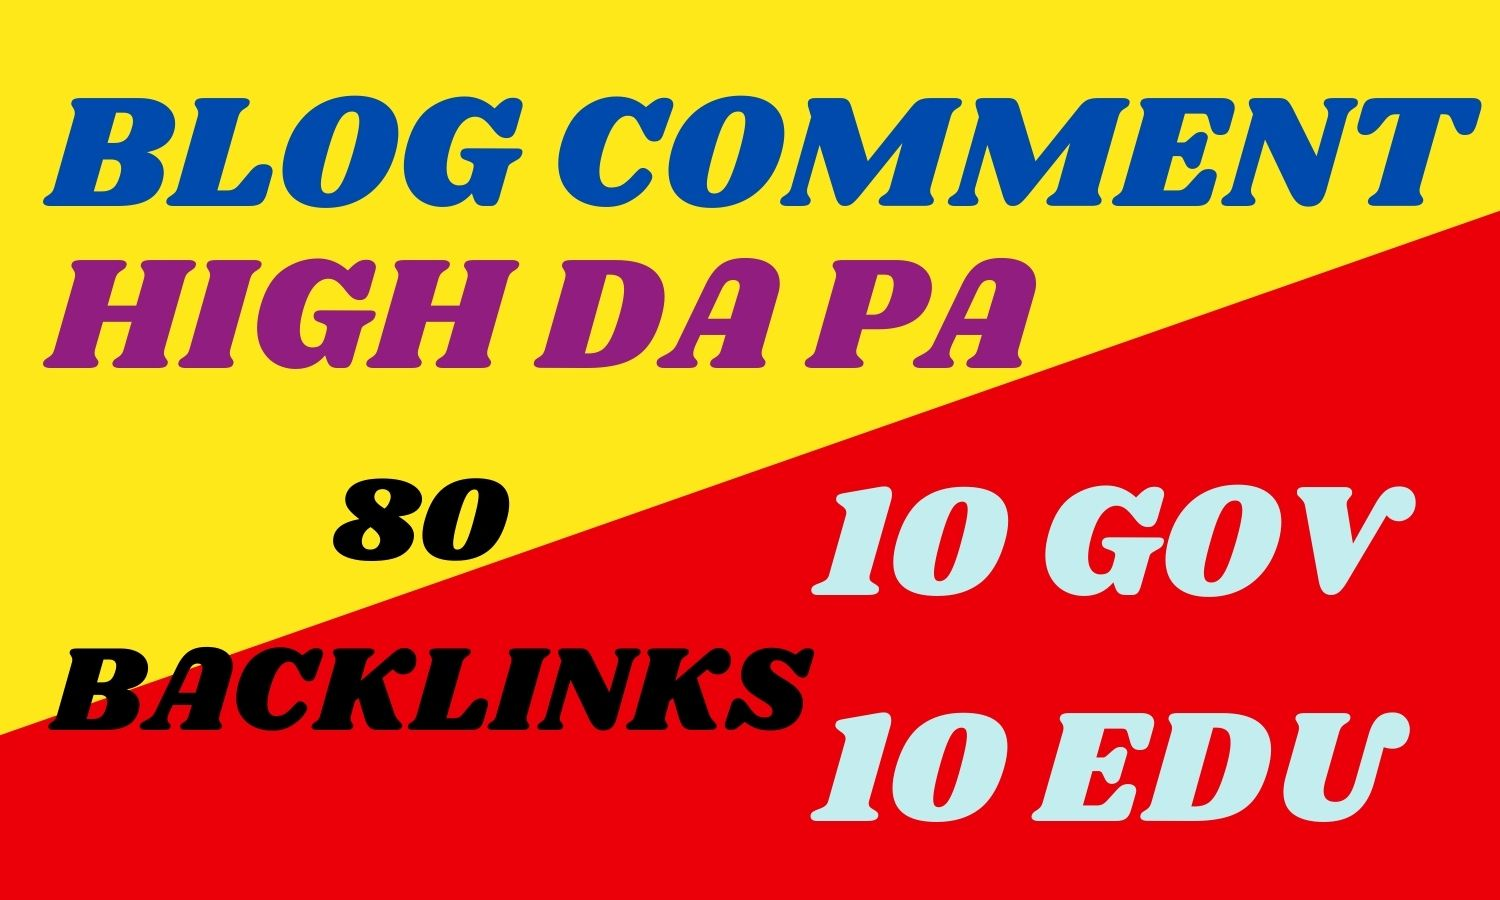 80 blog comments include 10 EDU 10 GVO Total 80 blogcomments with High DA PA backlinks